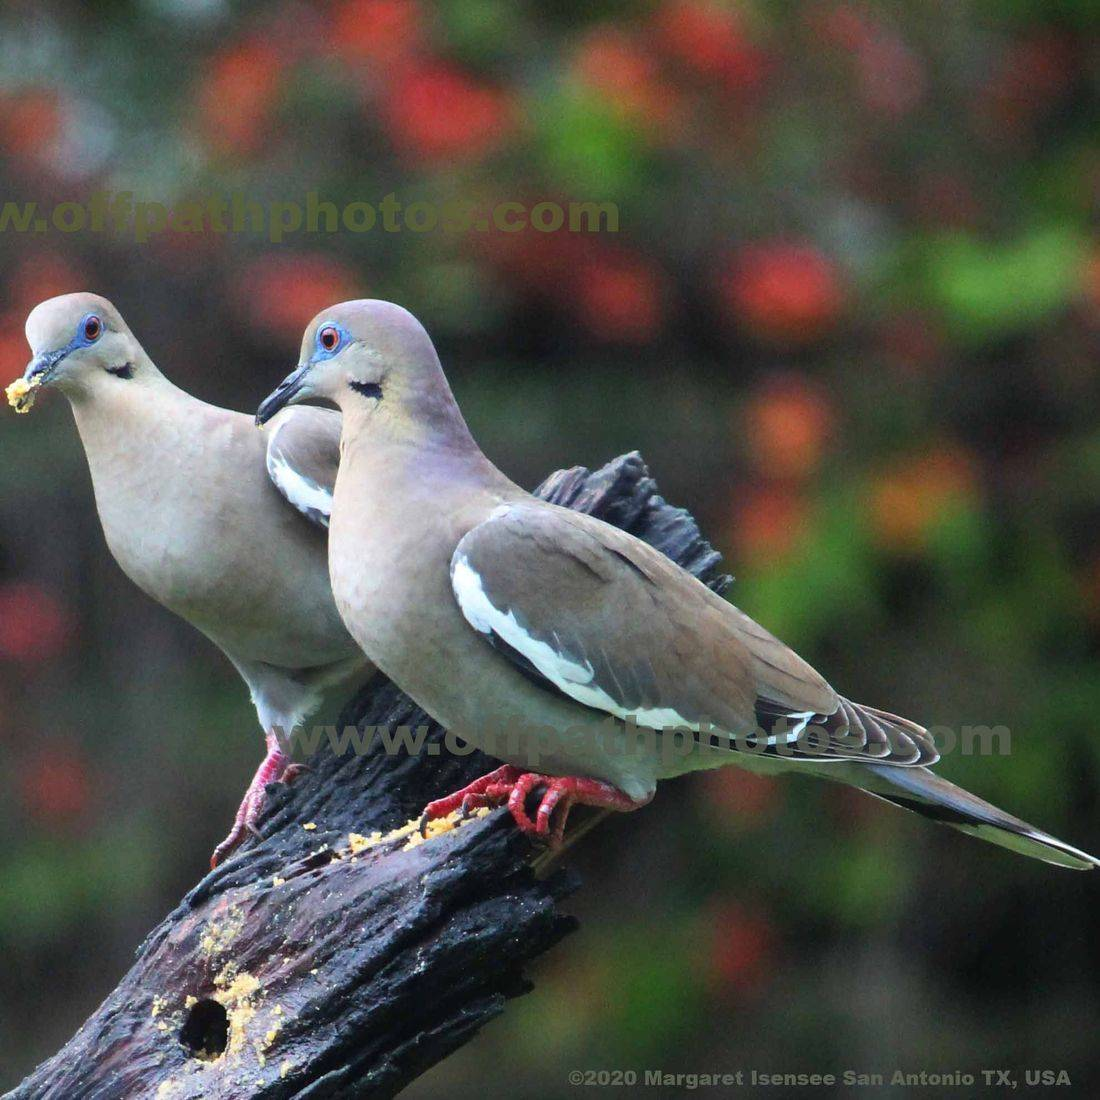 photography, wild animals, birds, food, nature, eating, doves, trees, beautiful